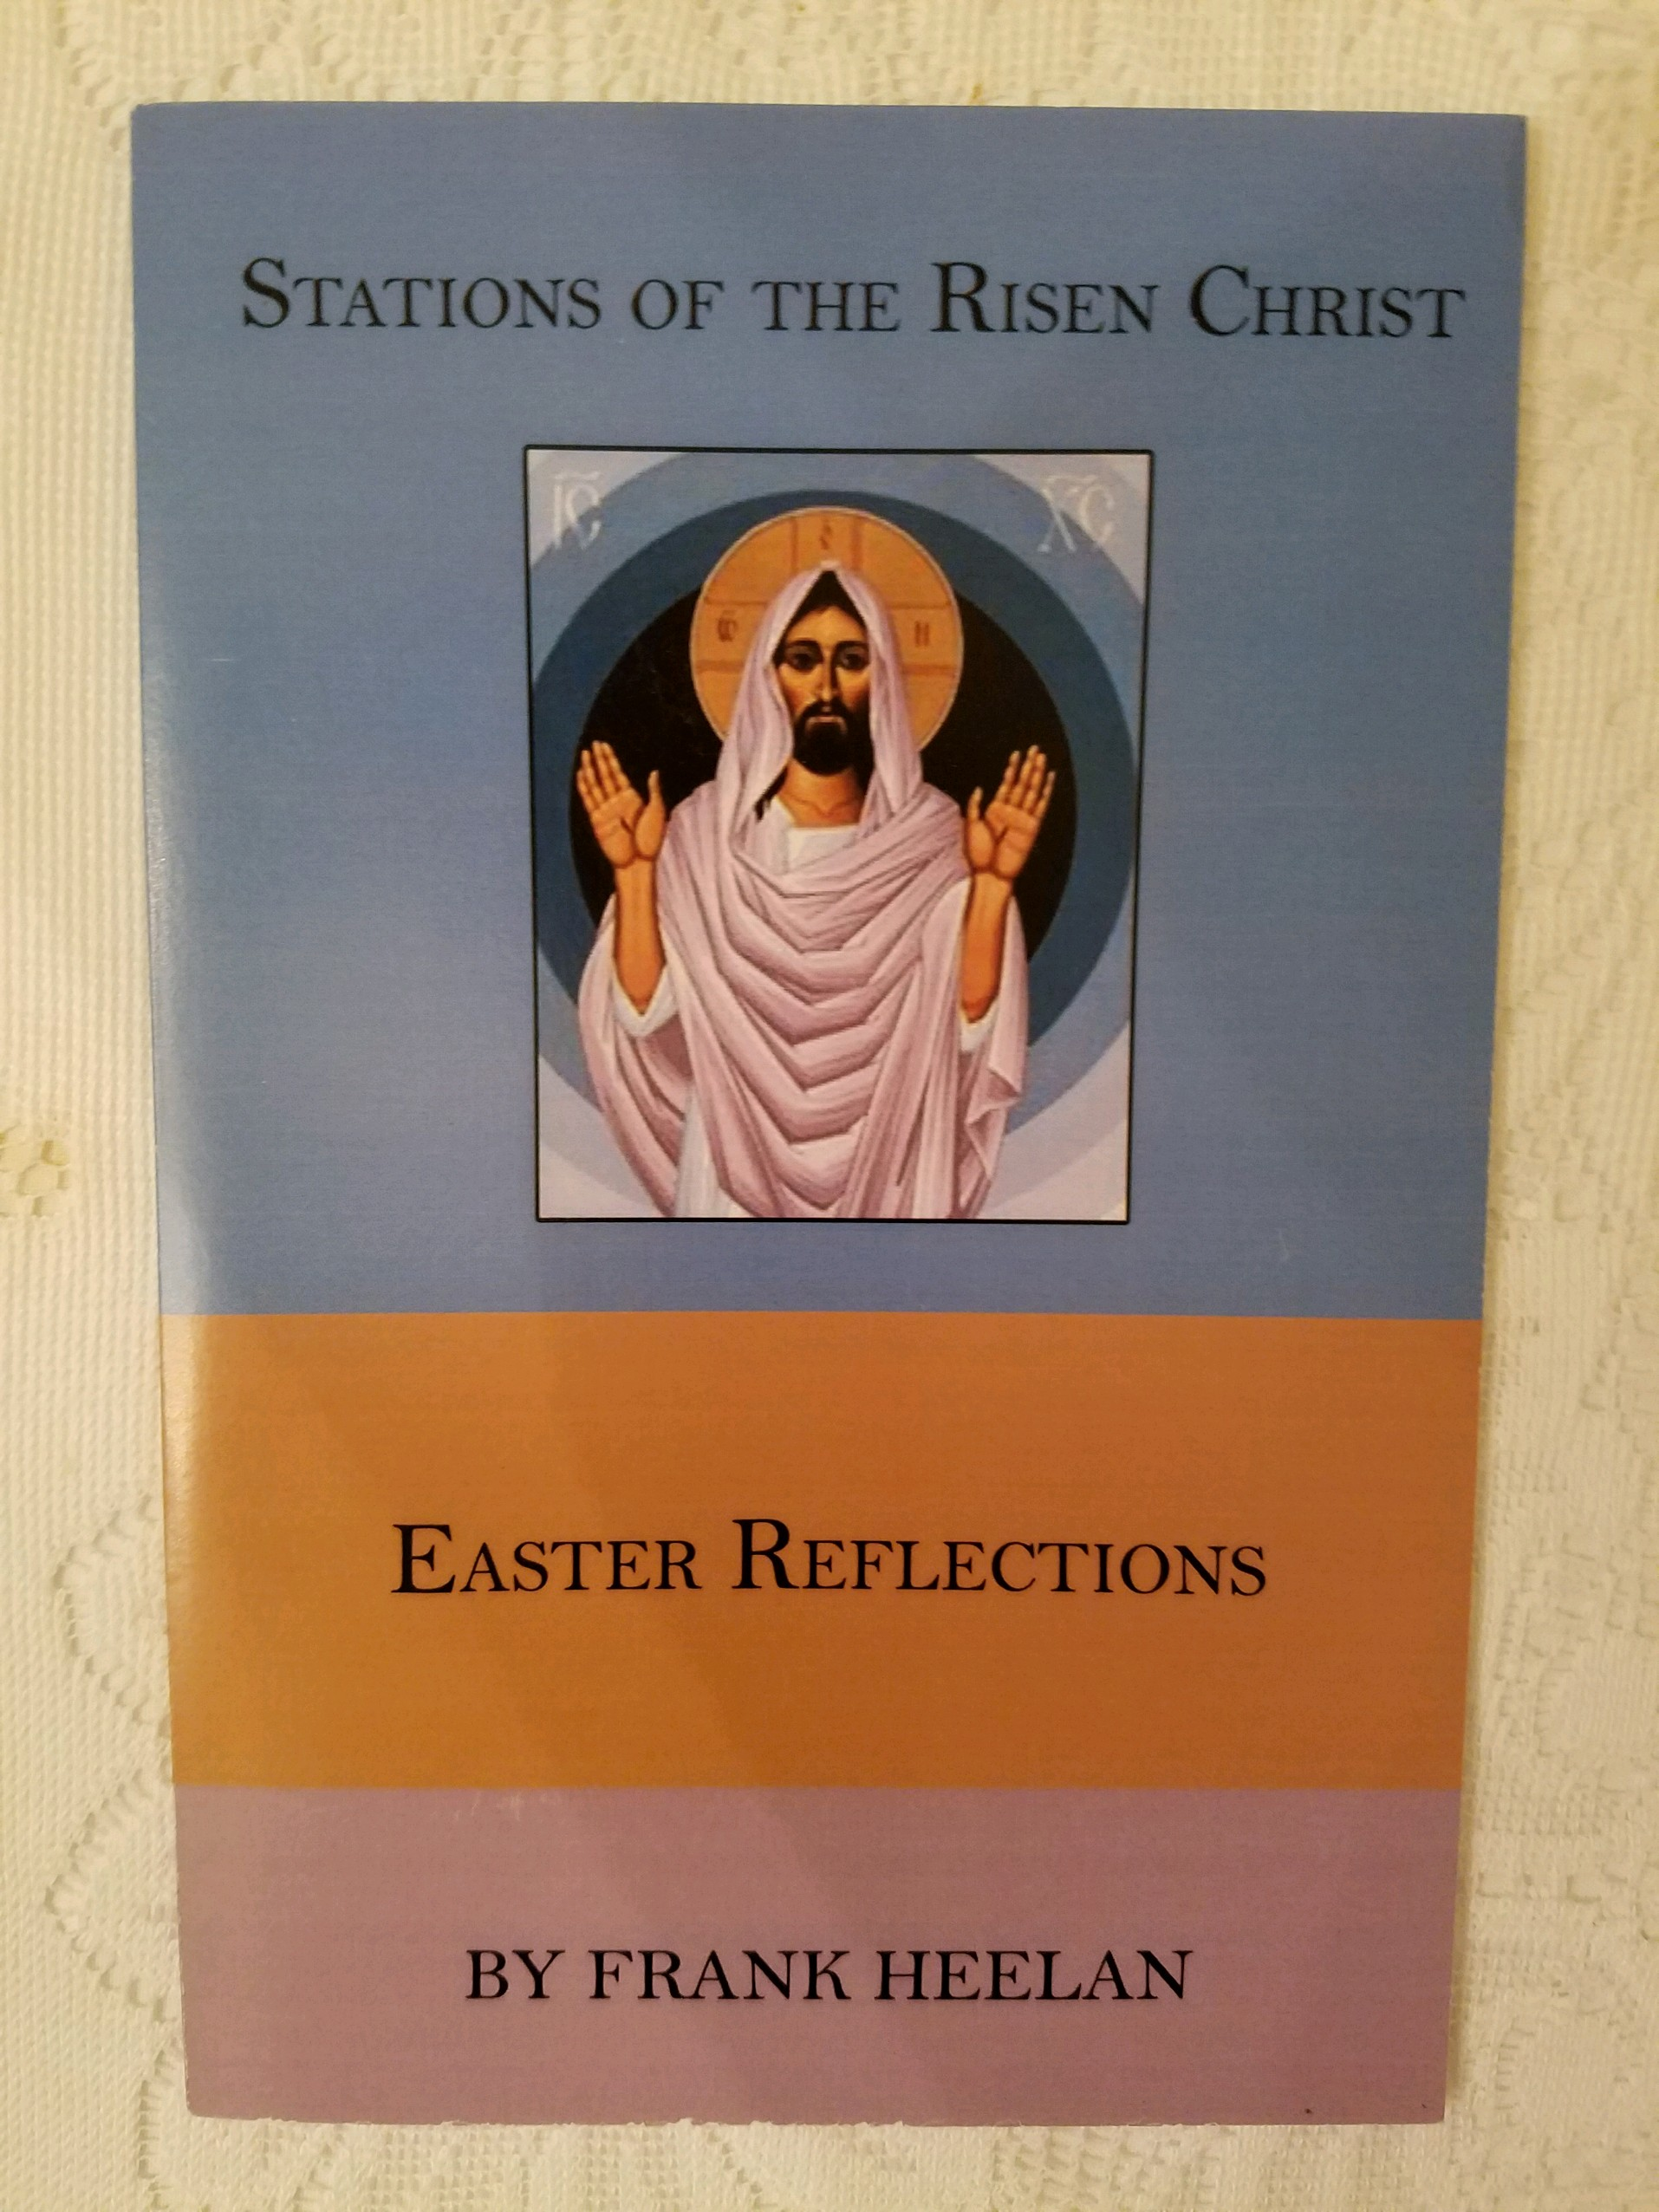 Station of the Risen Christ by Frank Heelan